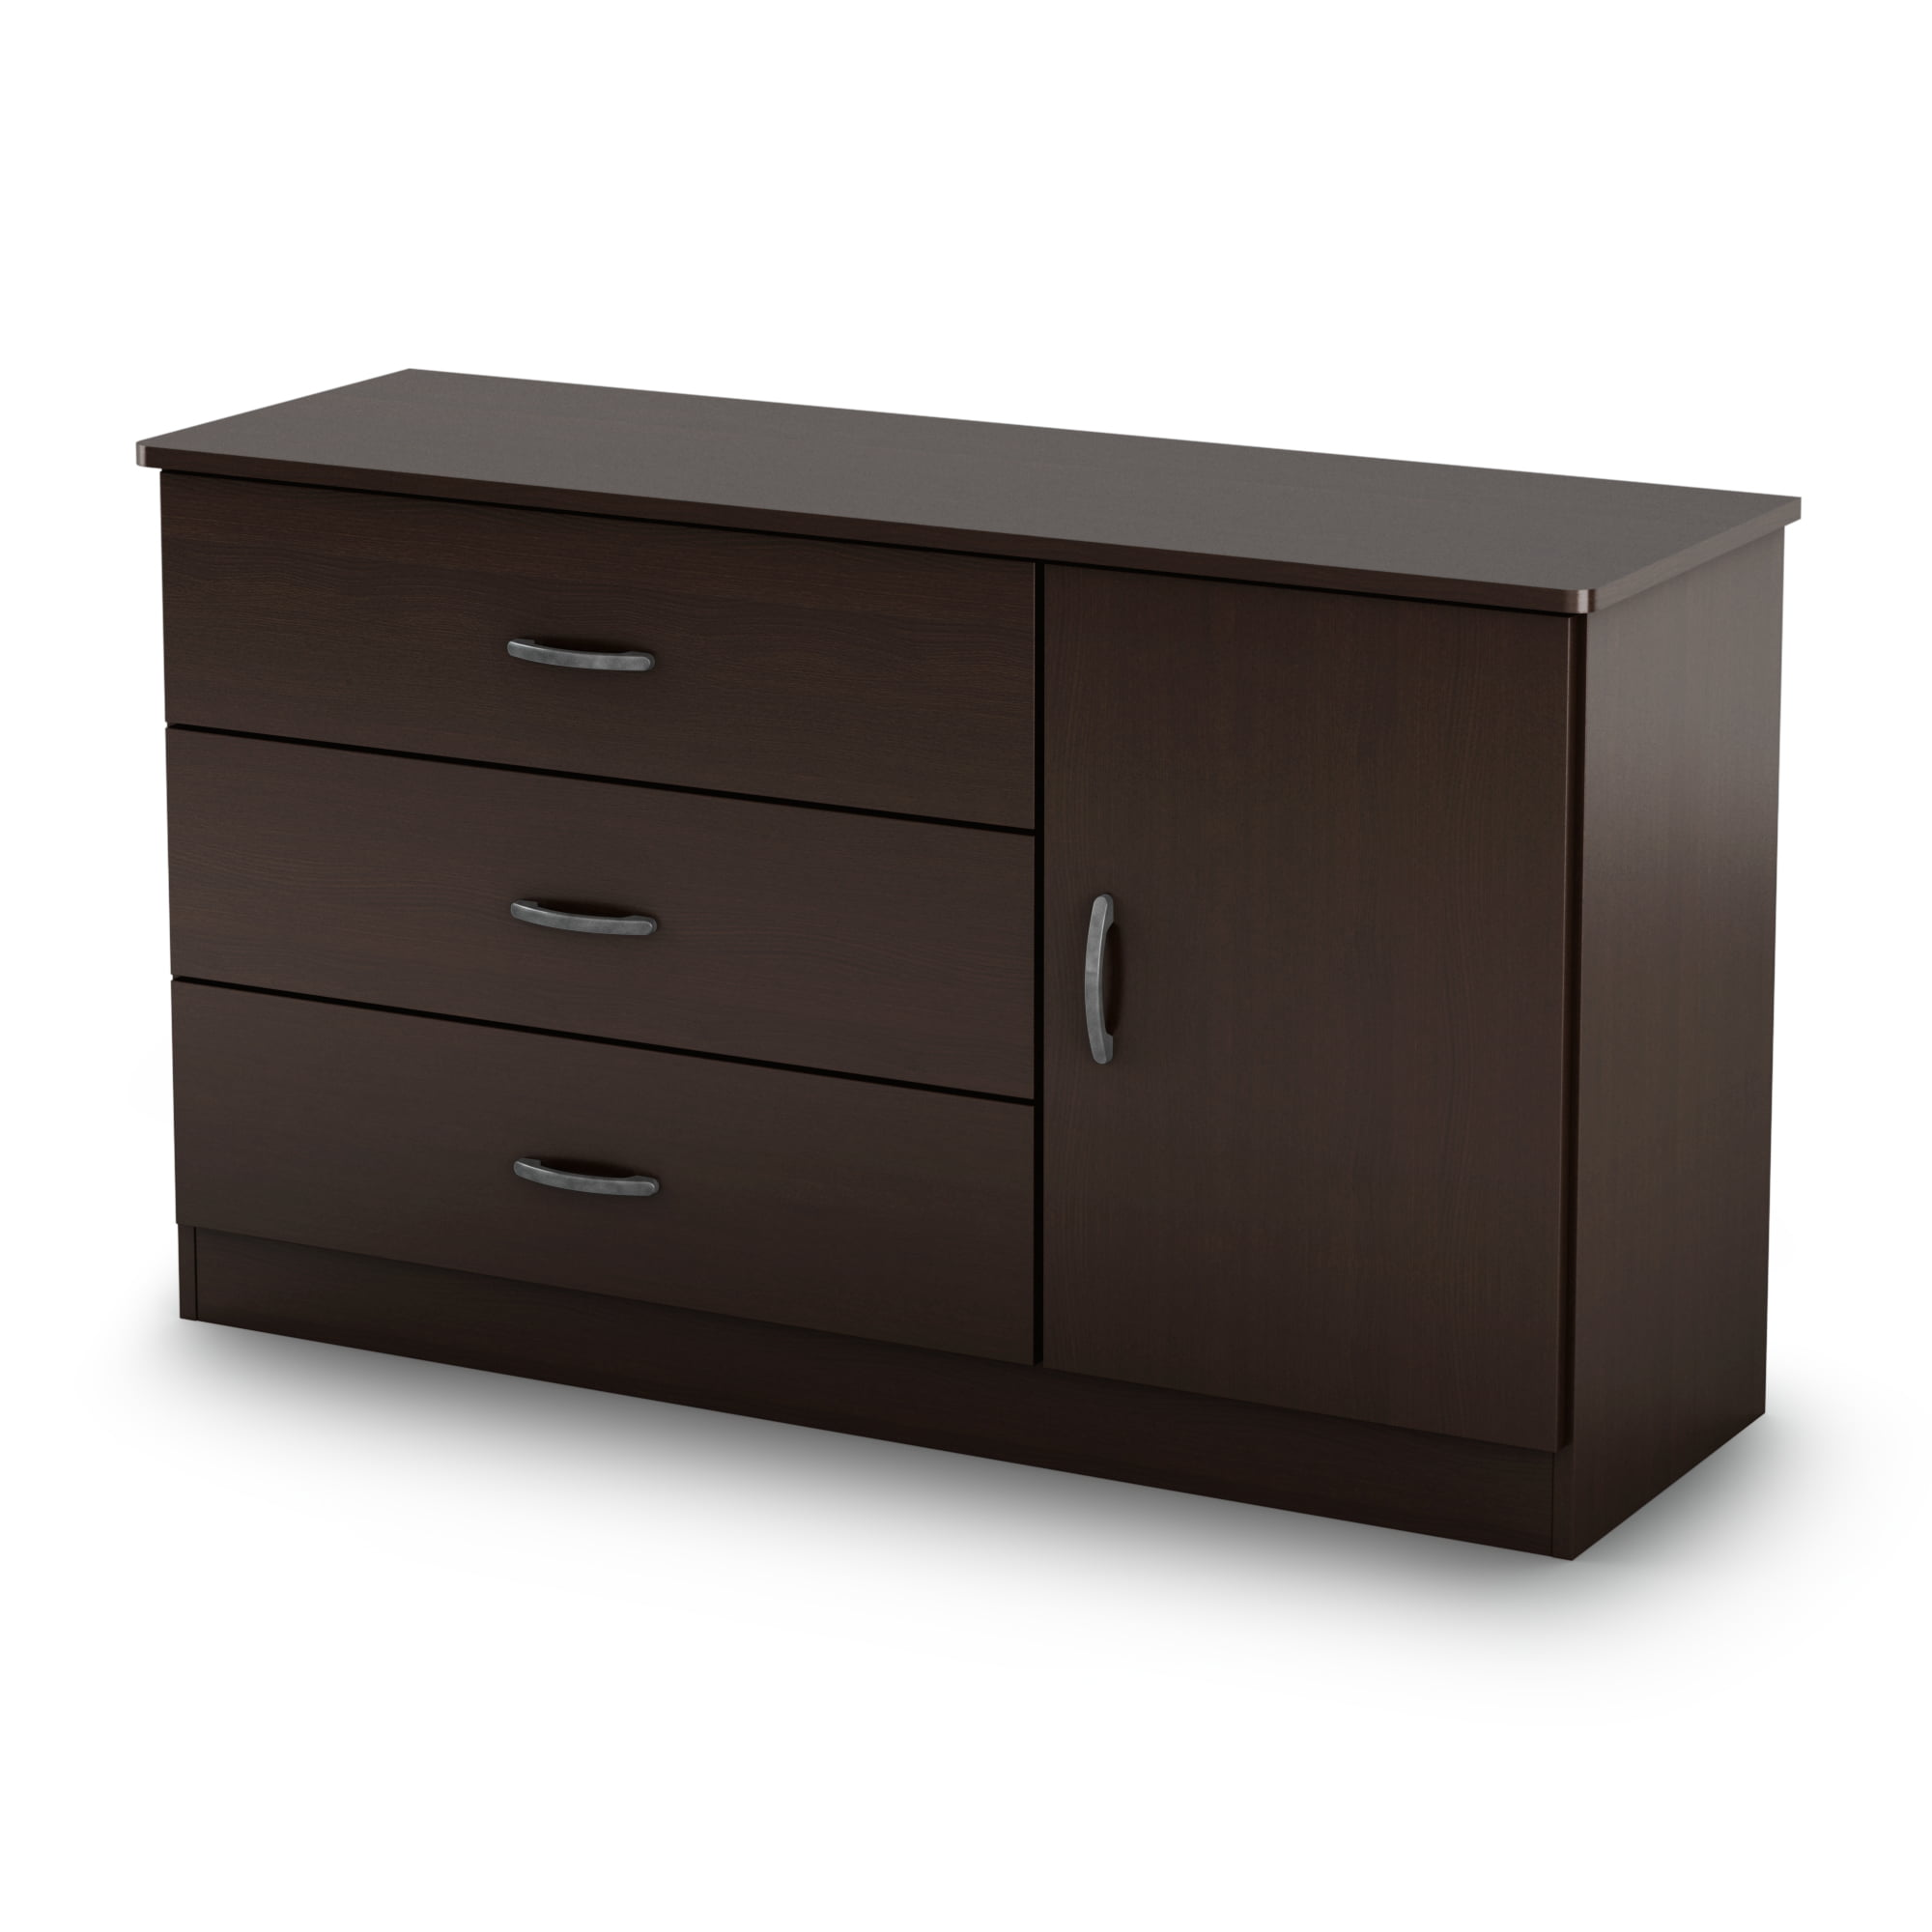 en ikea brown products mirror chest us dresser malm catalog mirrored glass black drawer